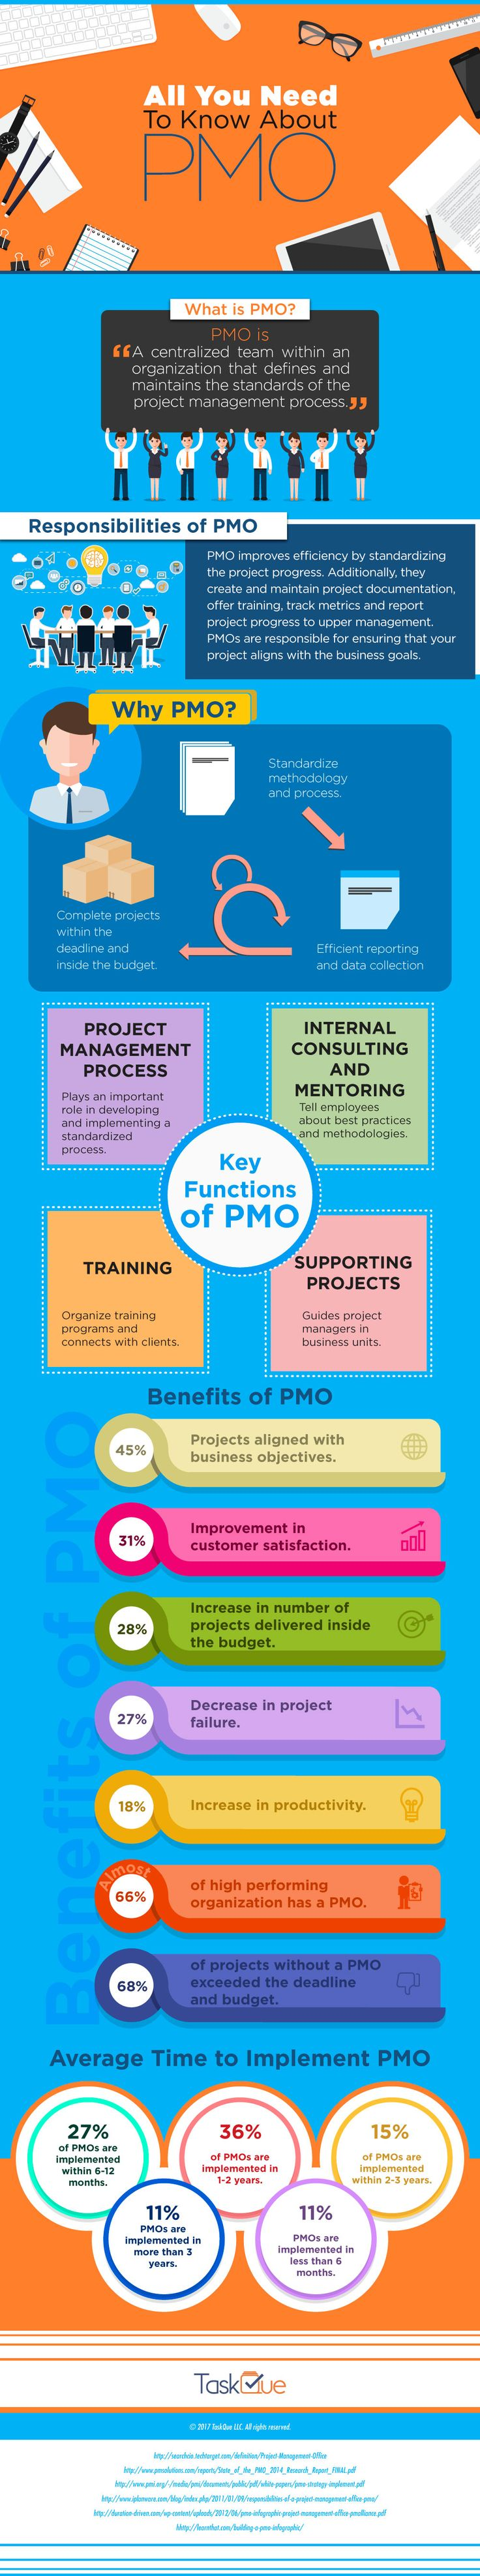 #PMO stands for #Project #Management #Office. Most of us know that, right? But what does it exactly mean? What are the key functions and responsibilities of PMO?  #infographics #infographic #PMI #TaskQue #productive #leadership #leader #business